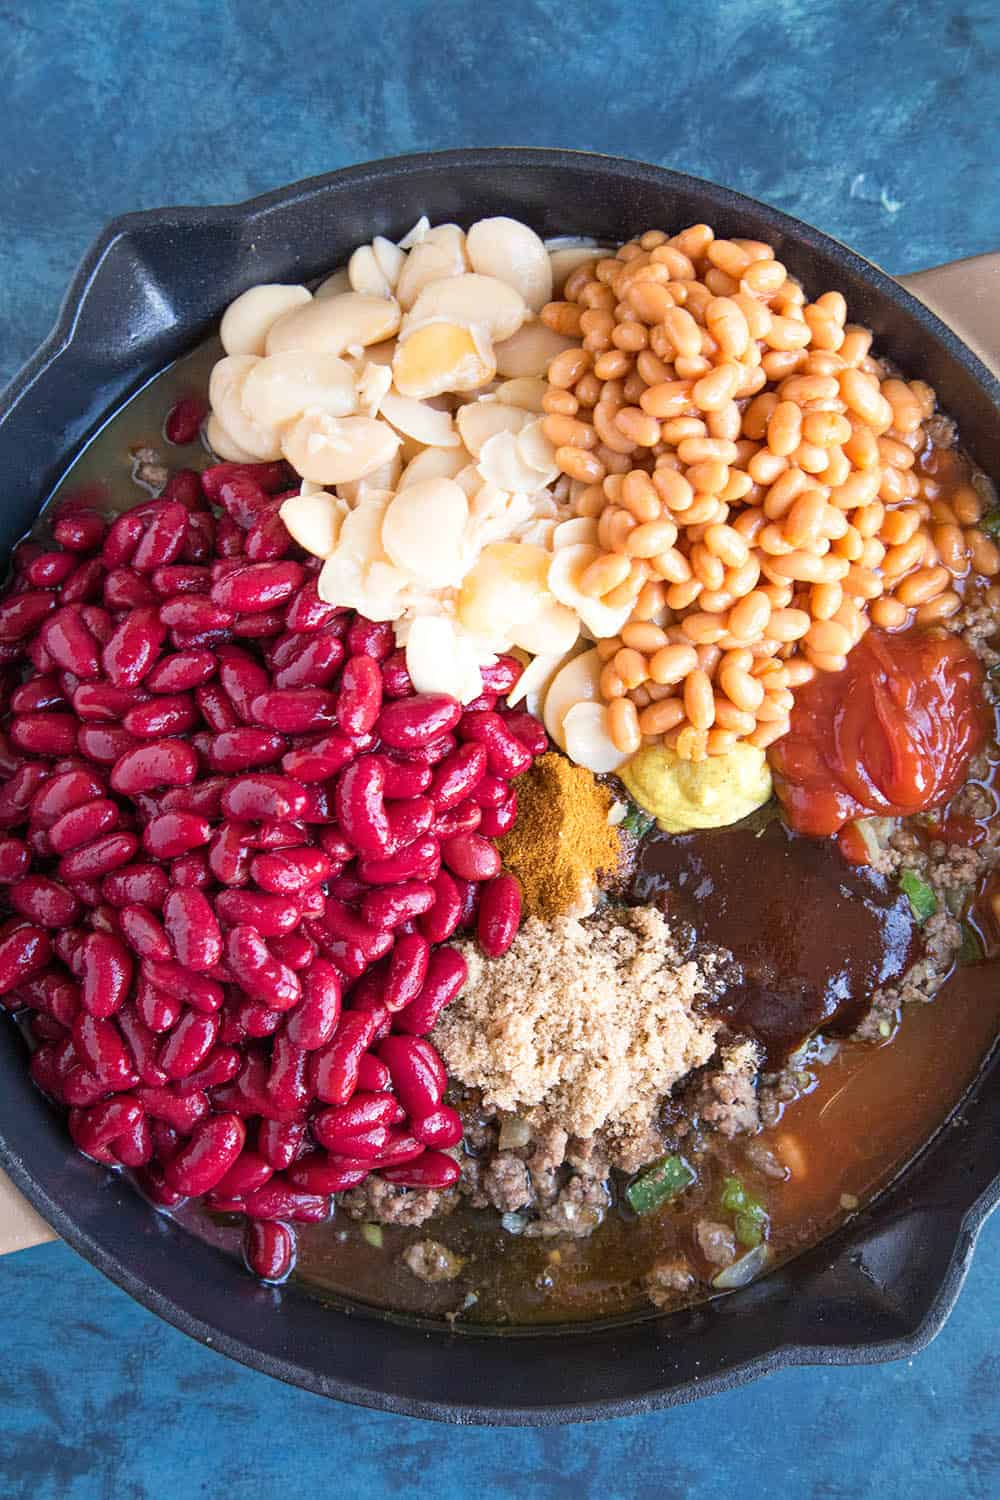 Adding the beans to the pan